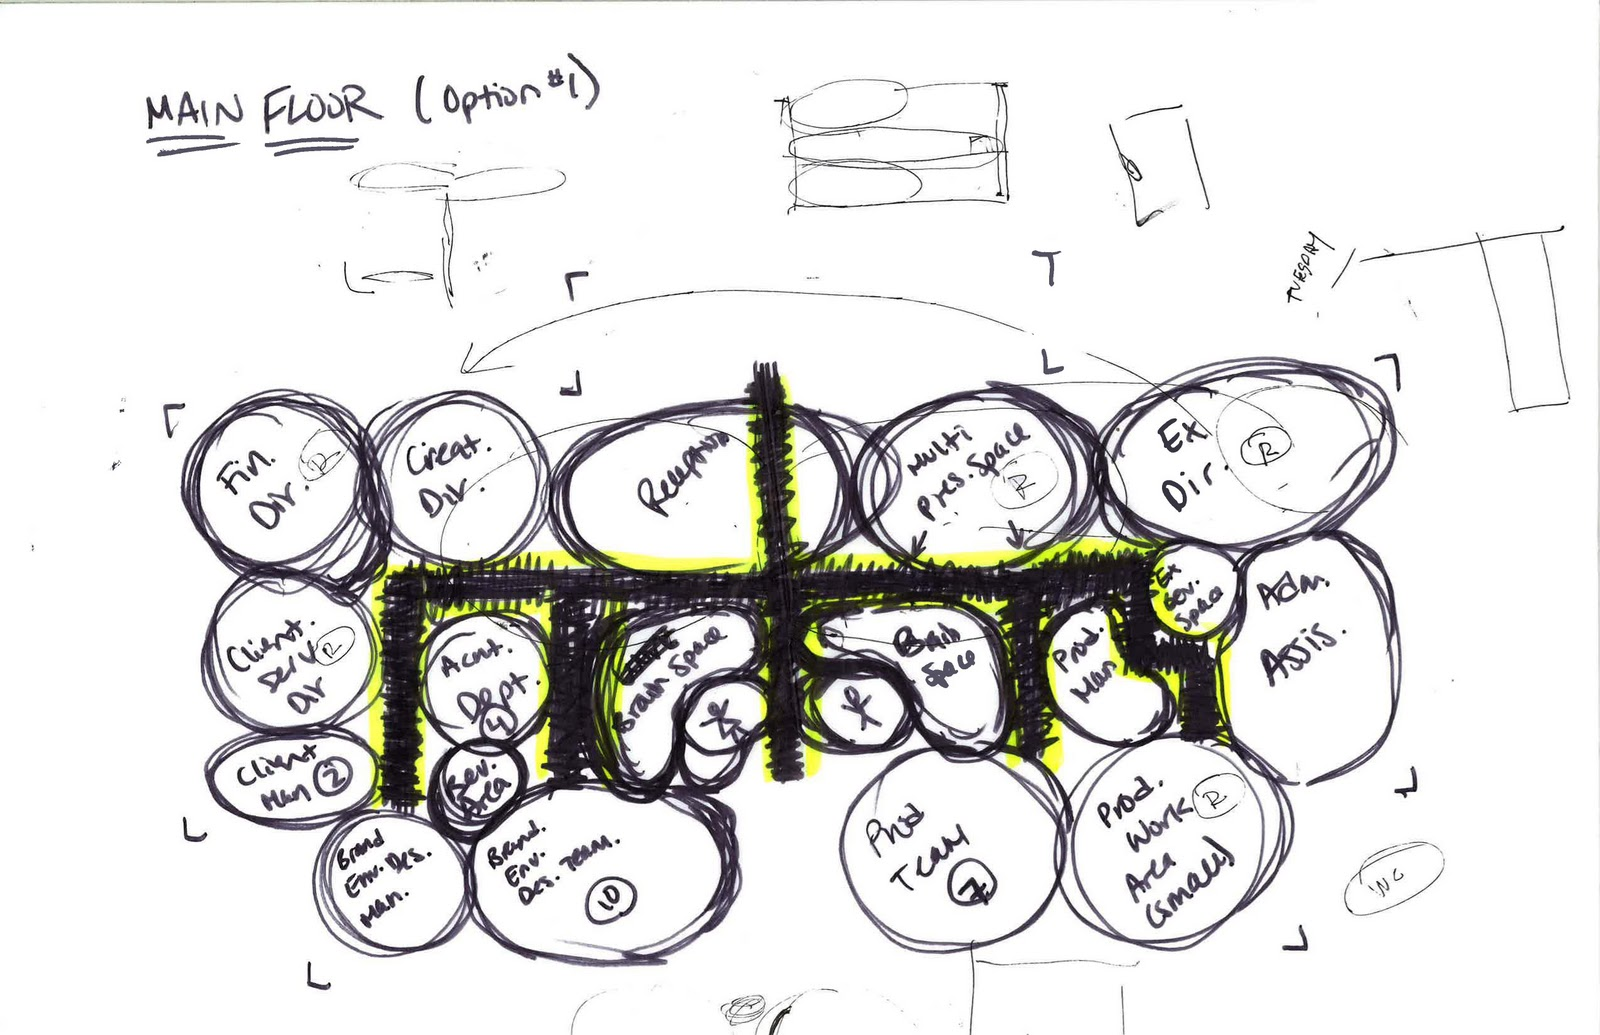 Gisselle Murillo Landor Corporate Office The Planning Process